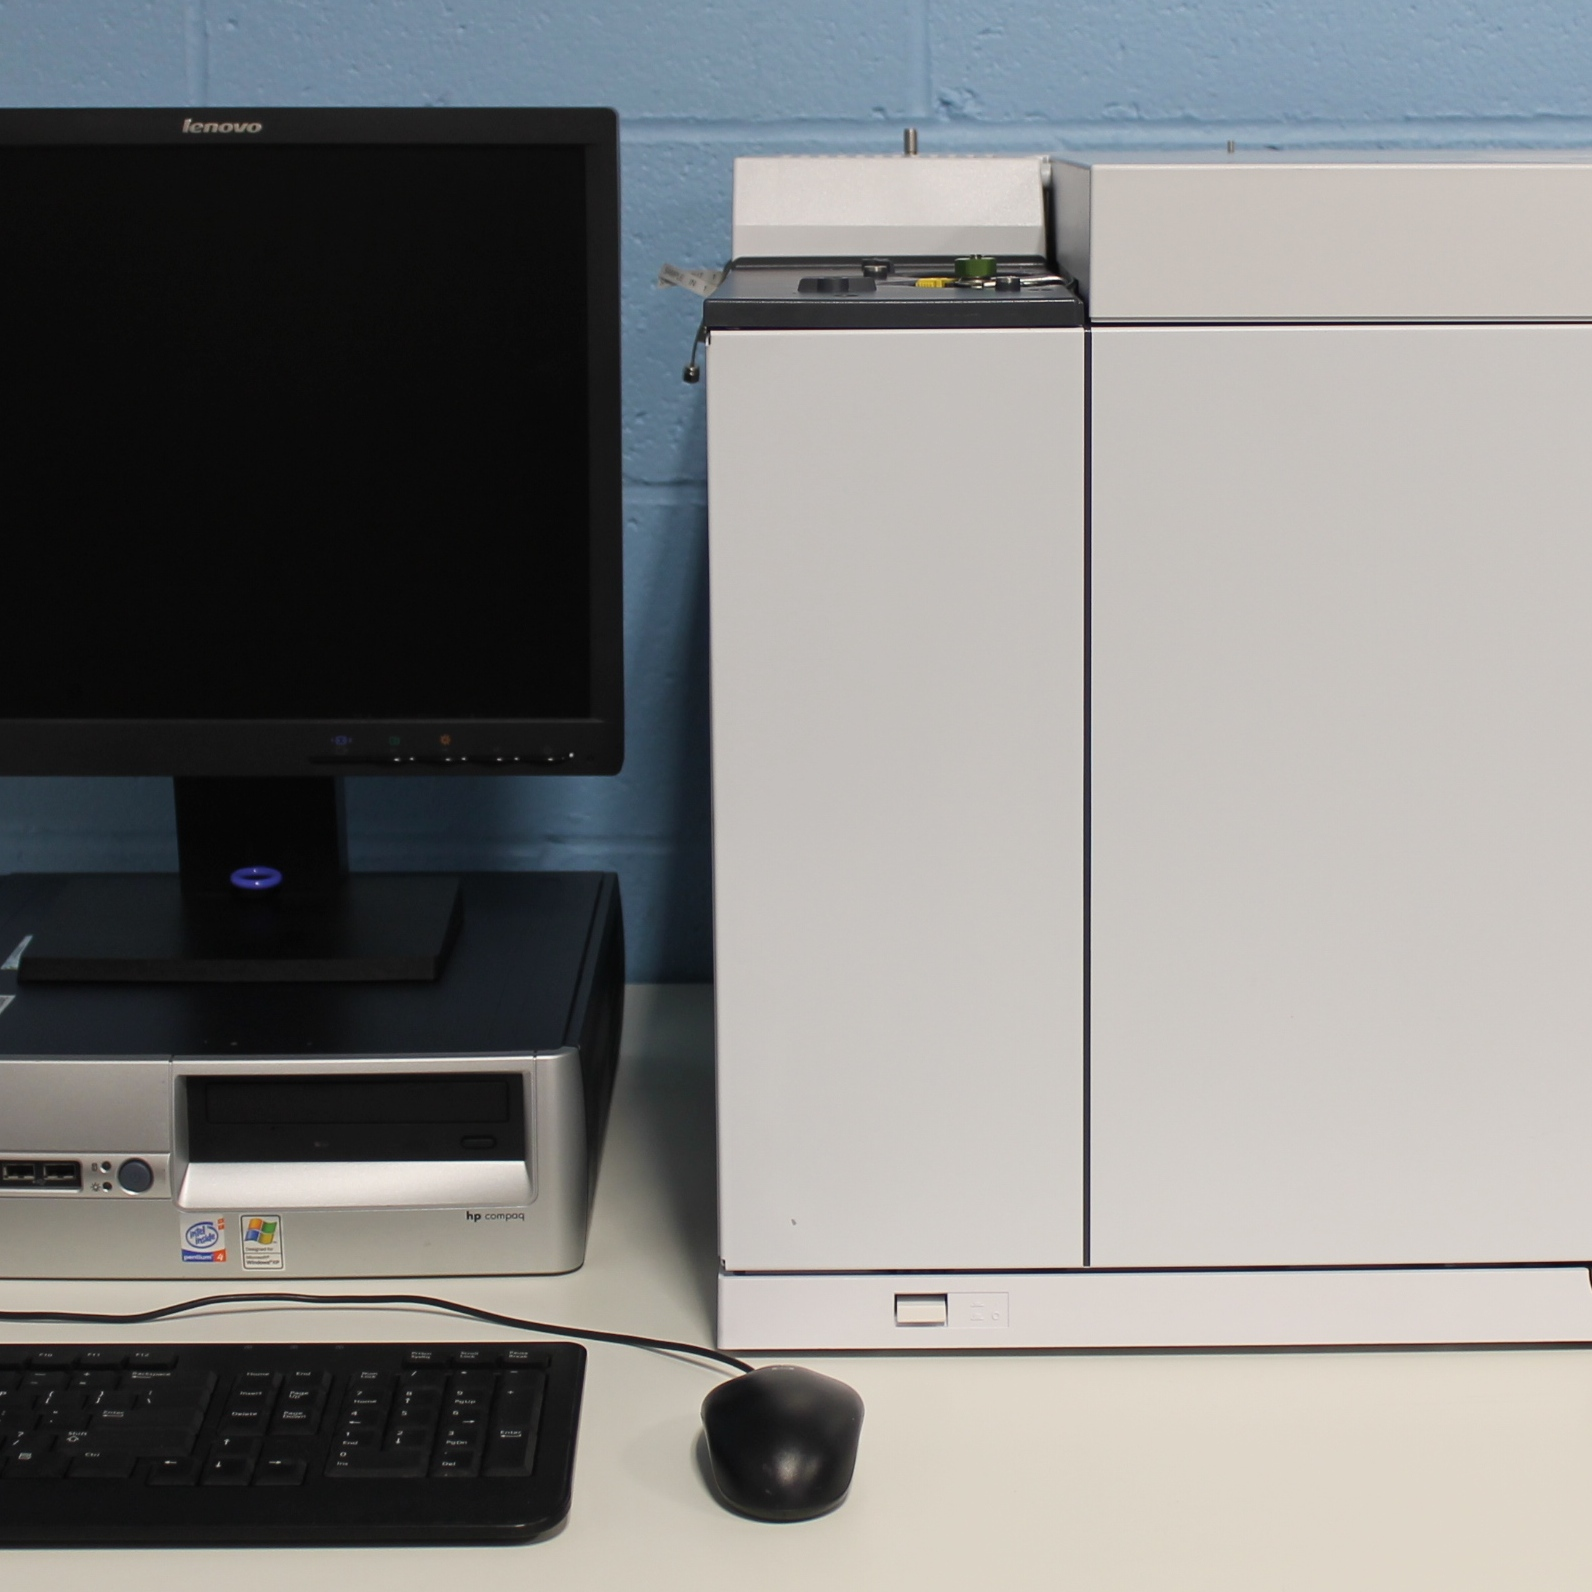 7890A (G3440A) Dual FID GC System Name